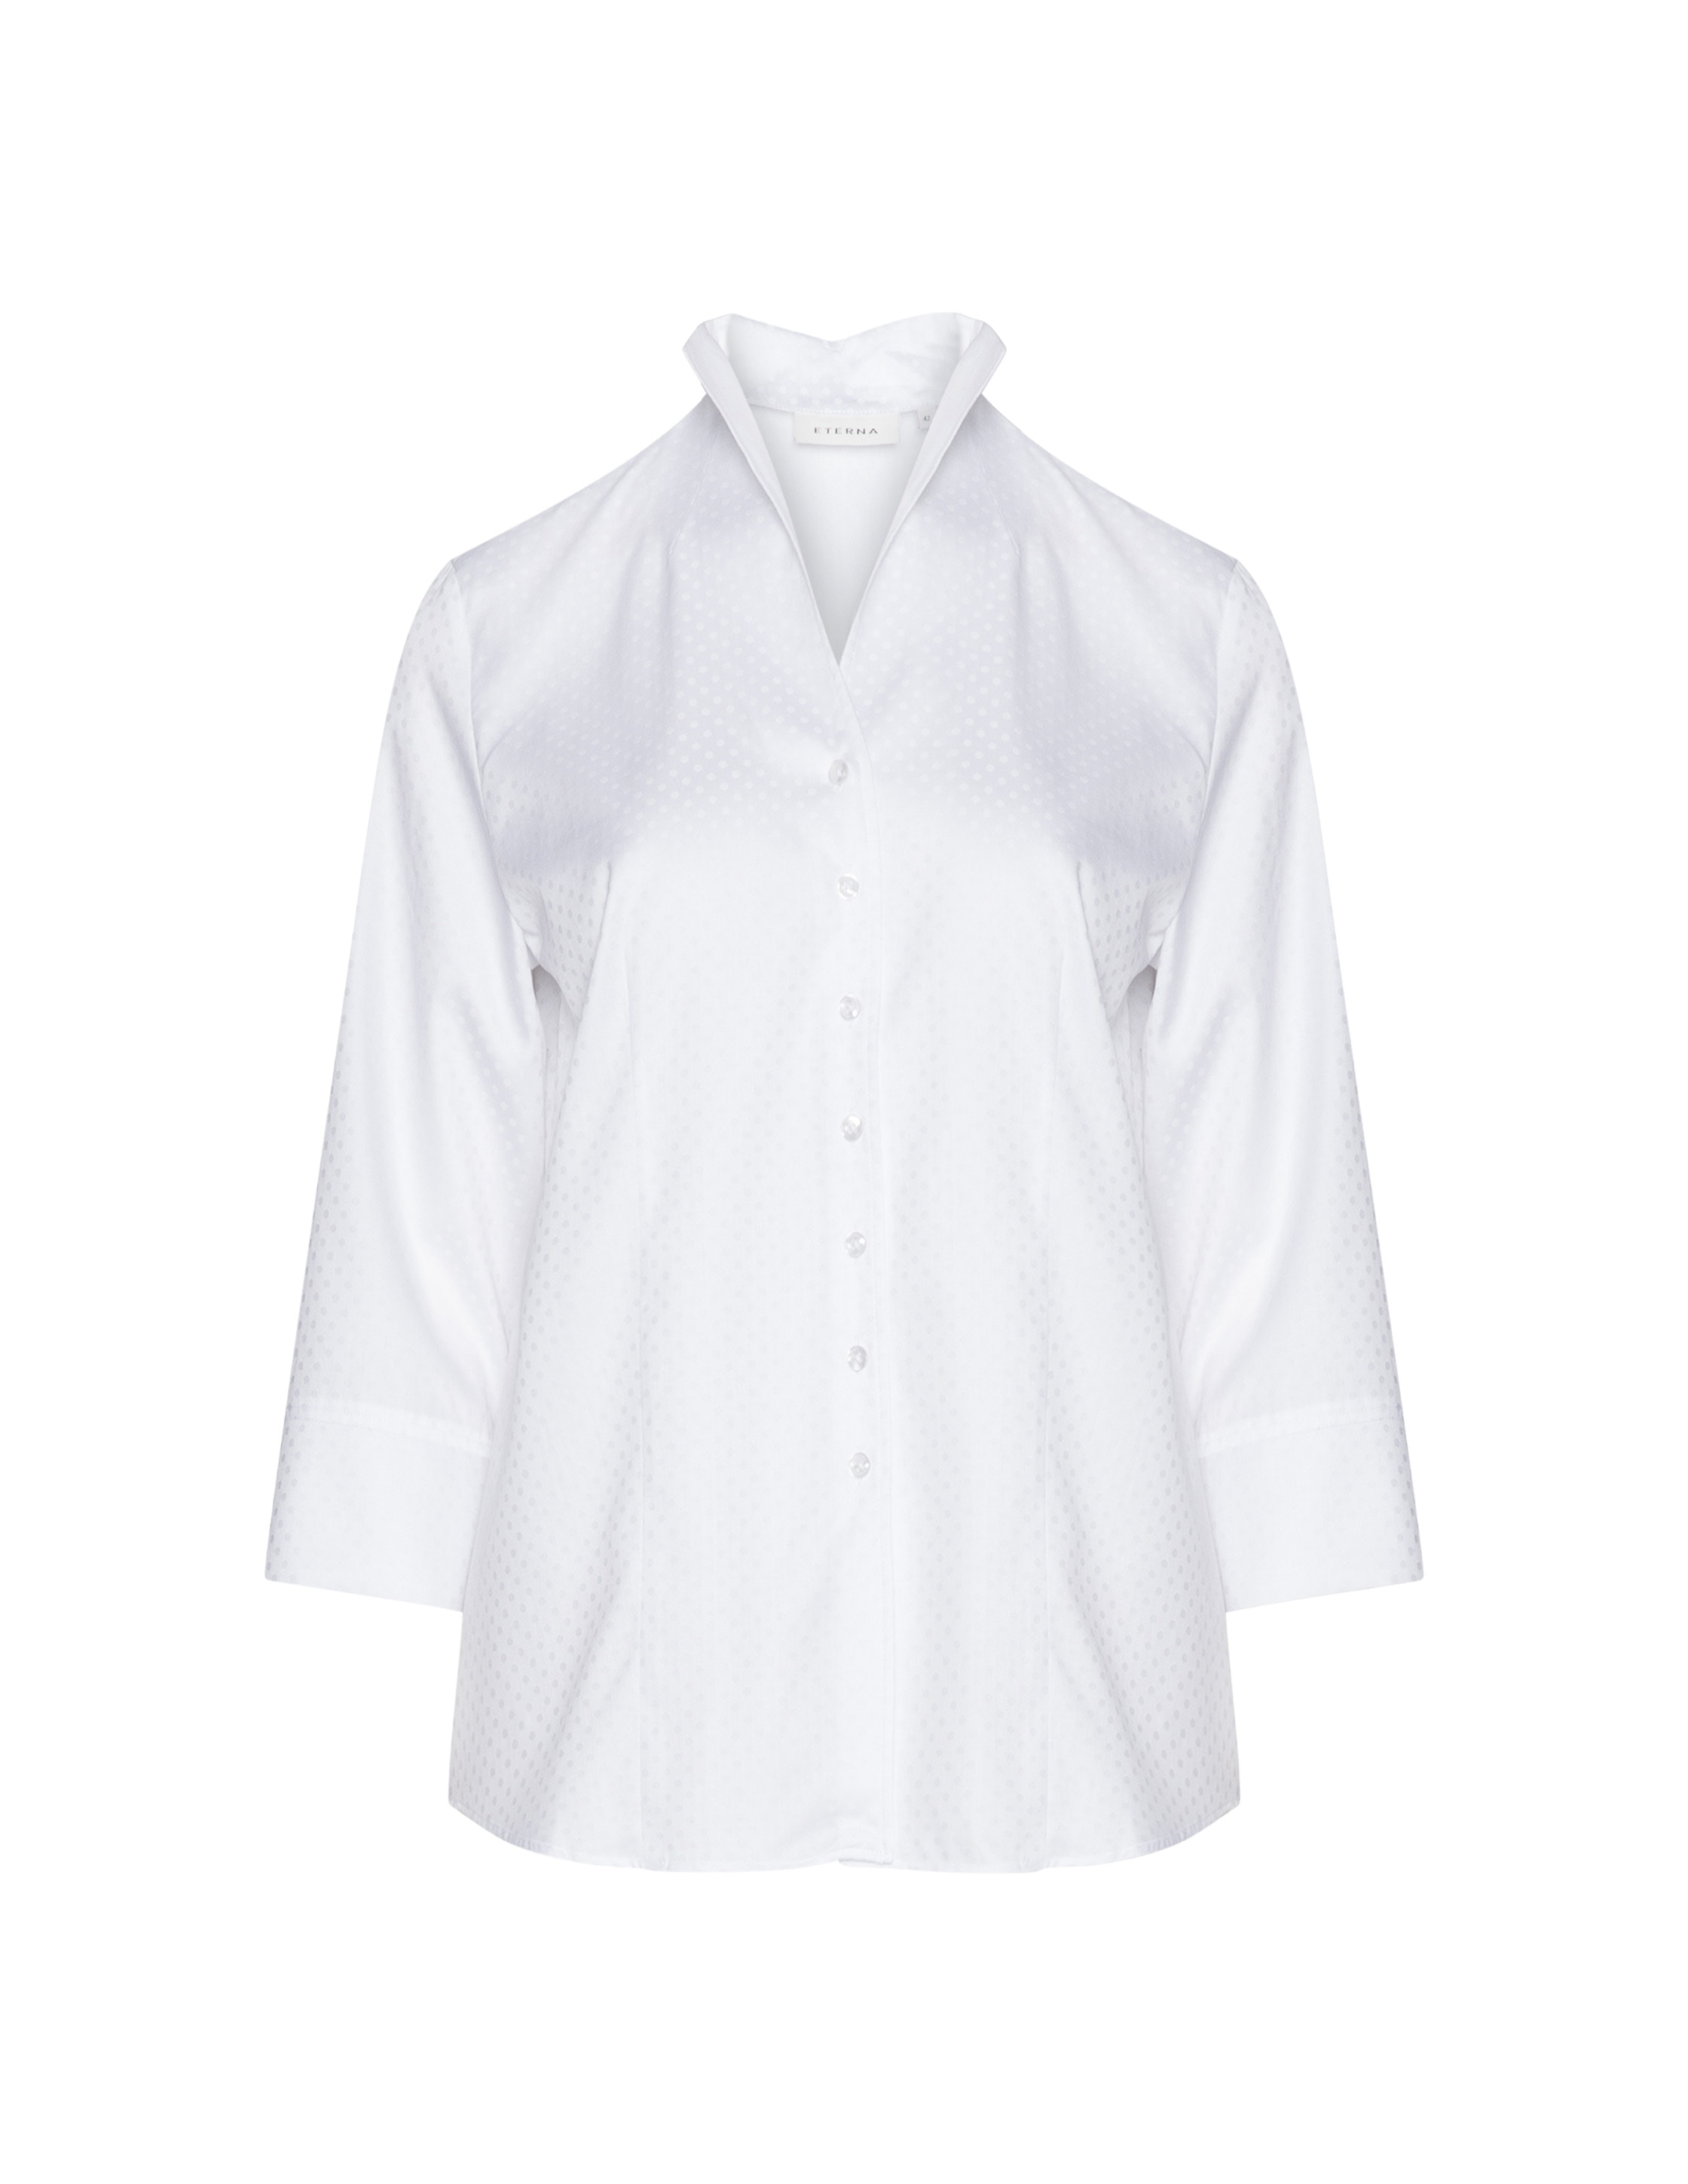 Eterna Shirts & Blouses - Buy Plus Size Fashion from navabi